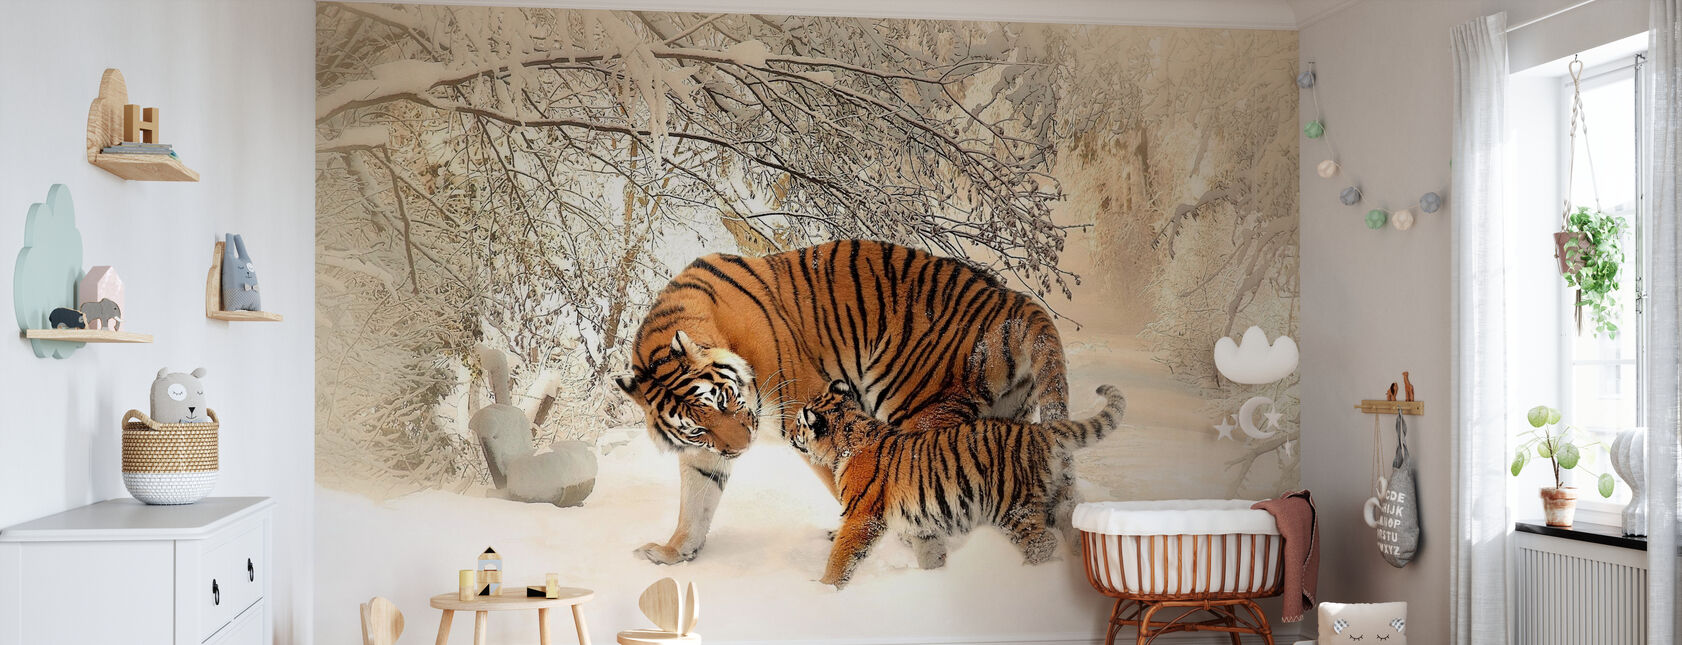 Tiger with Young Cub - Wallpaper - Nursery